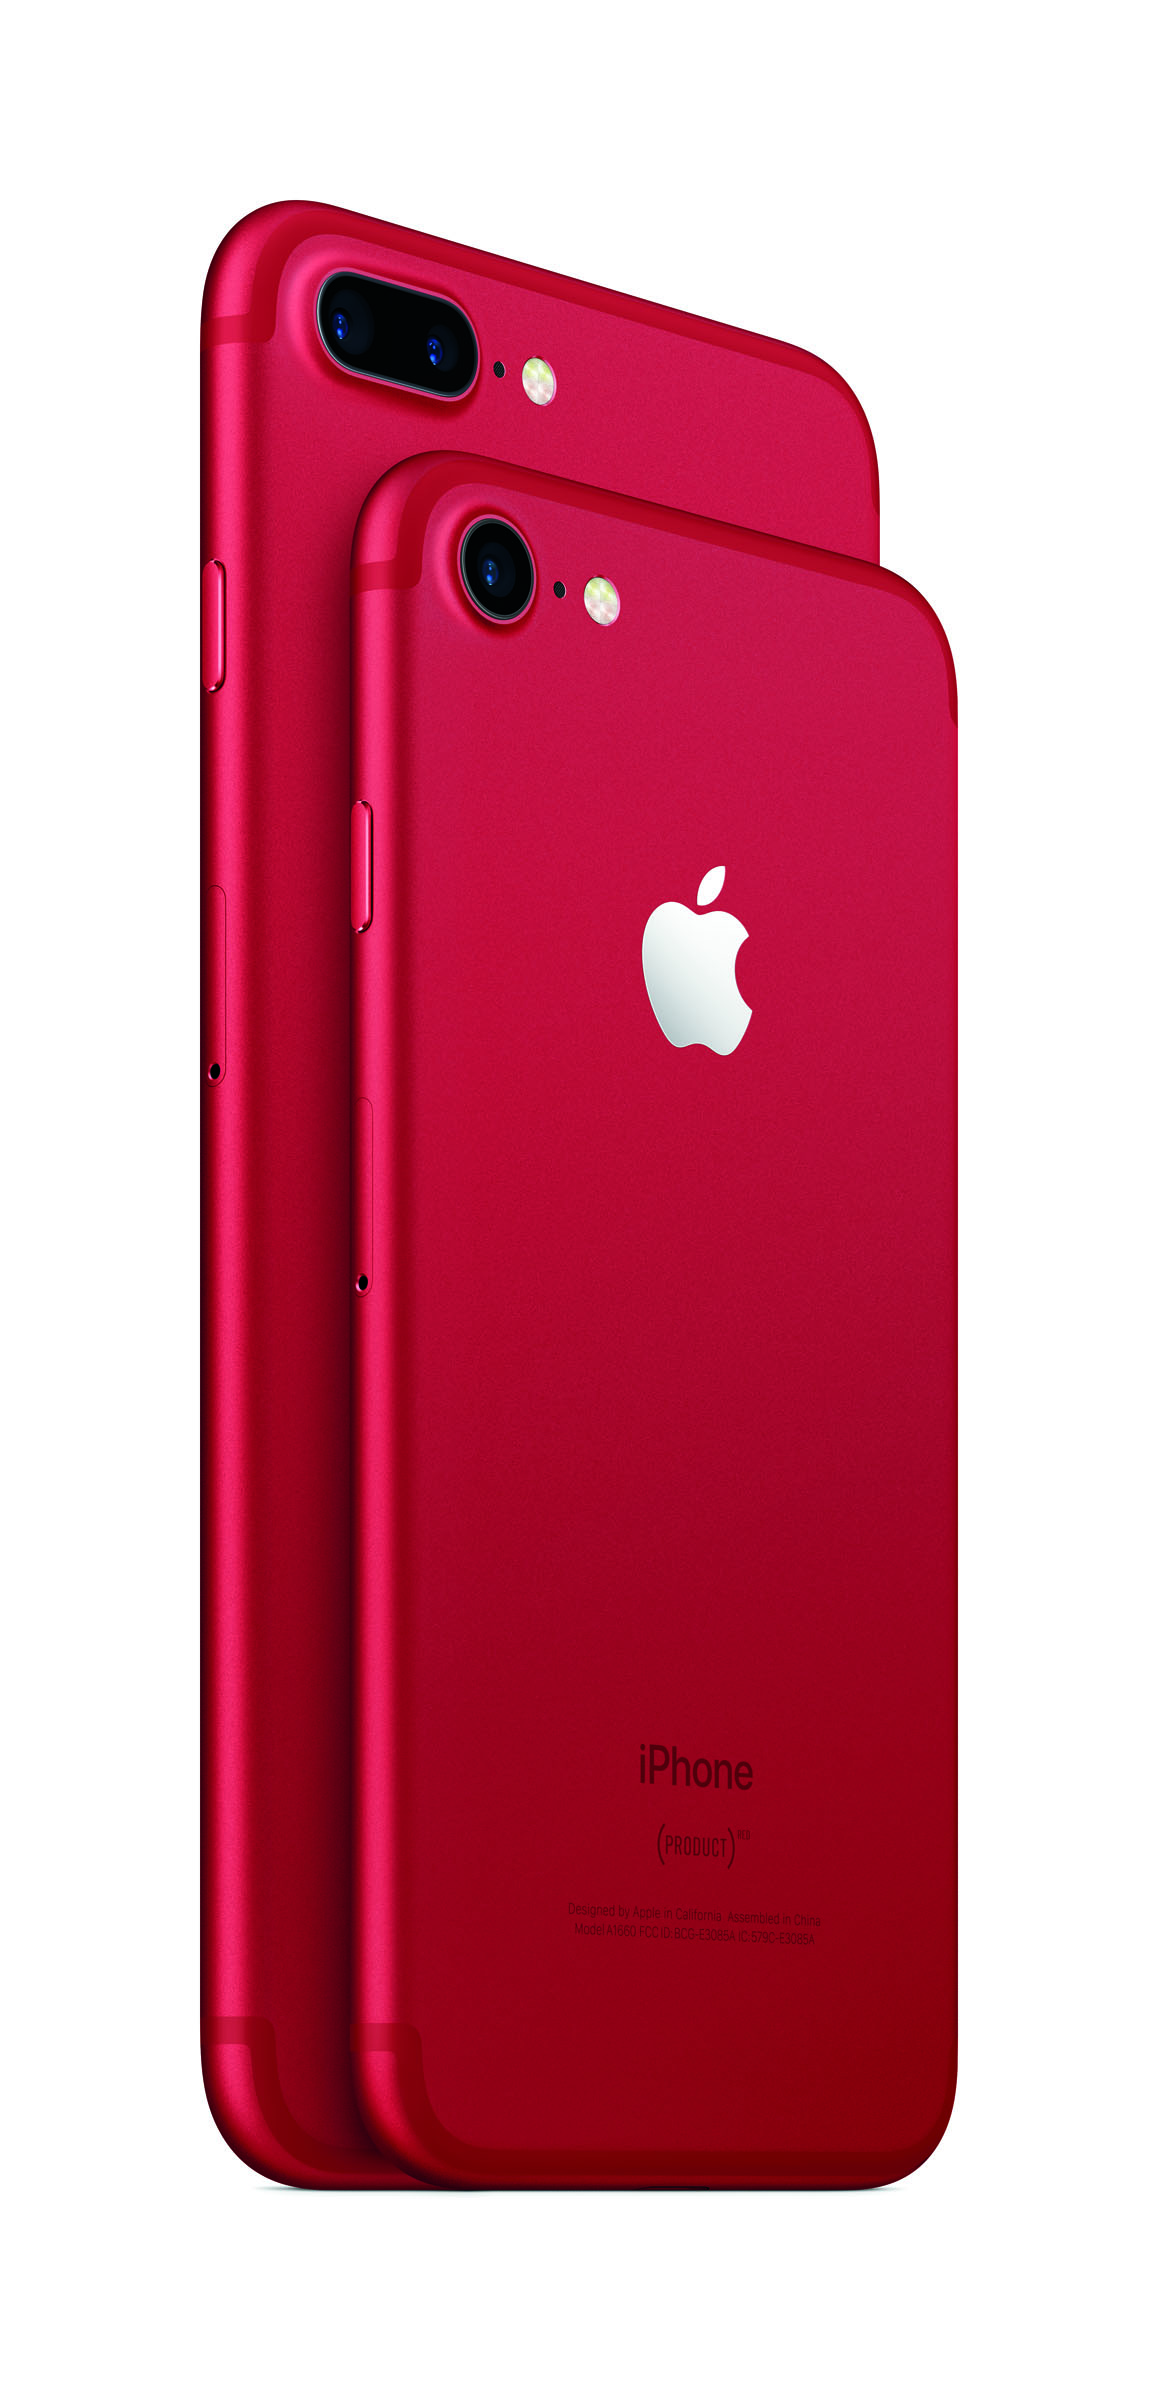 Unusual Product Red 34 Back Lockup Pr Print Iphone 7 S Won T Rotate Iphone 7 S Grey Iphone 7 Iphone 7 photos Iphone 7 Pictures